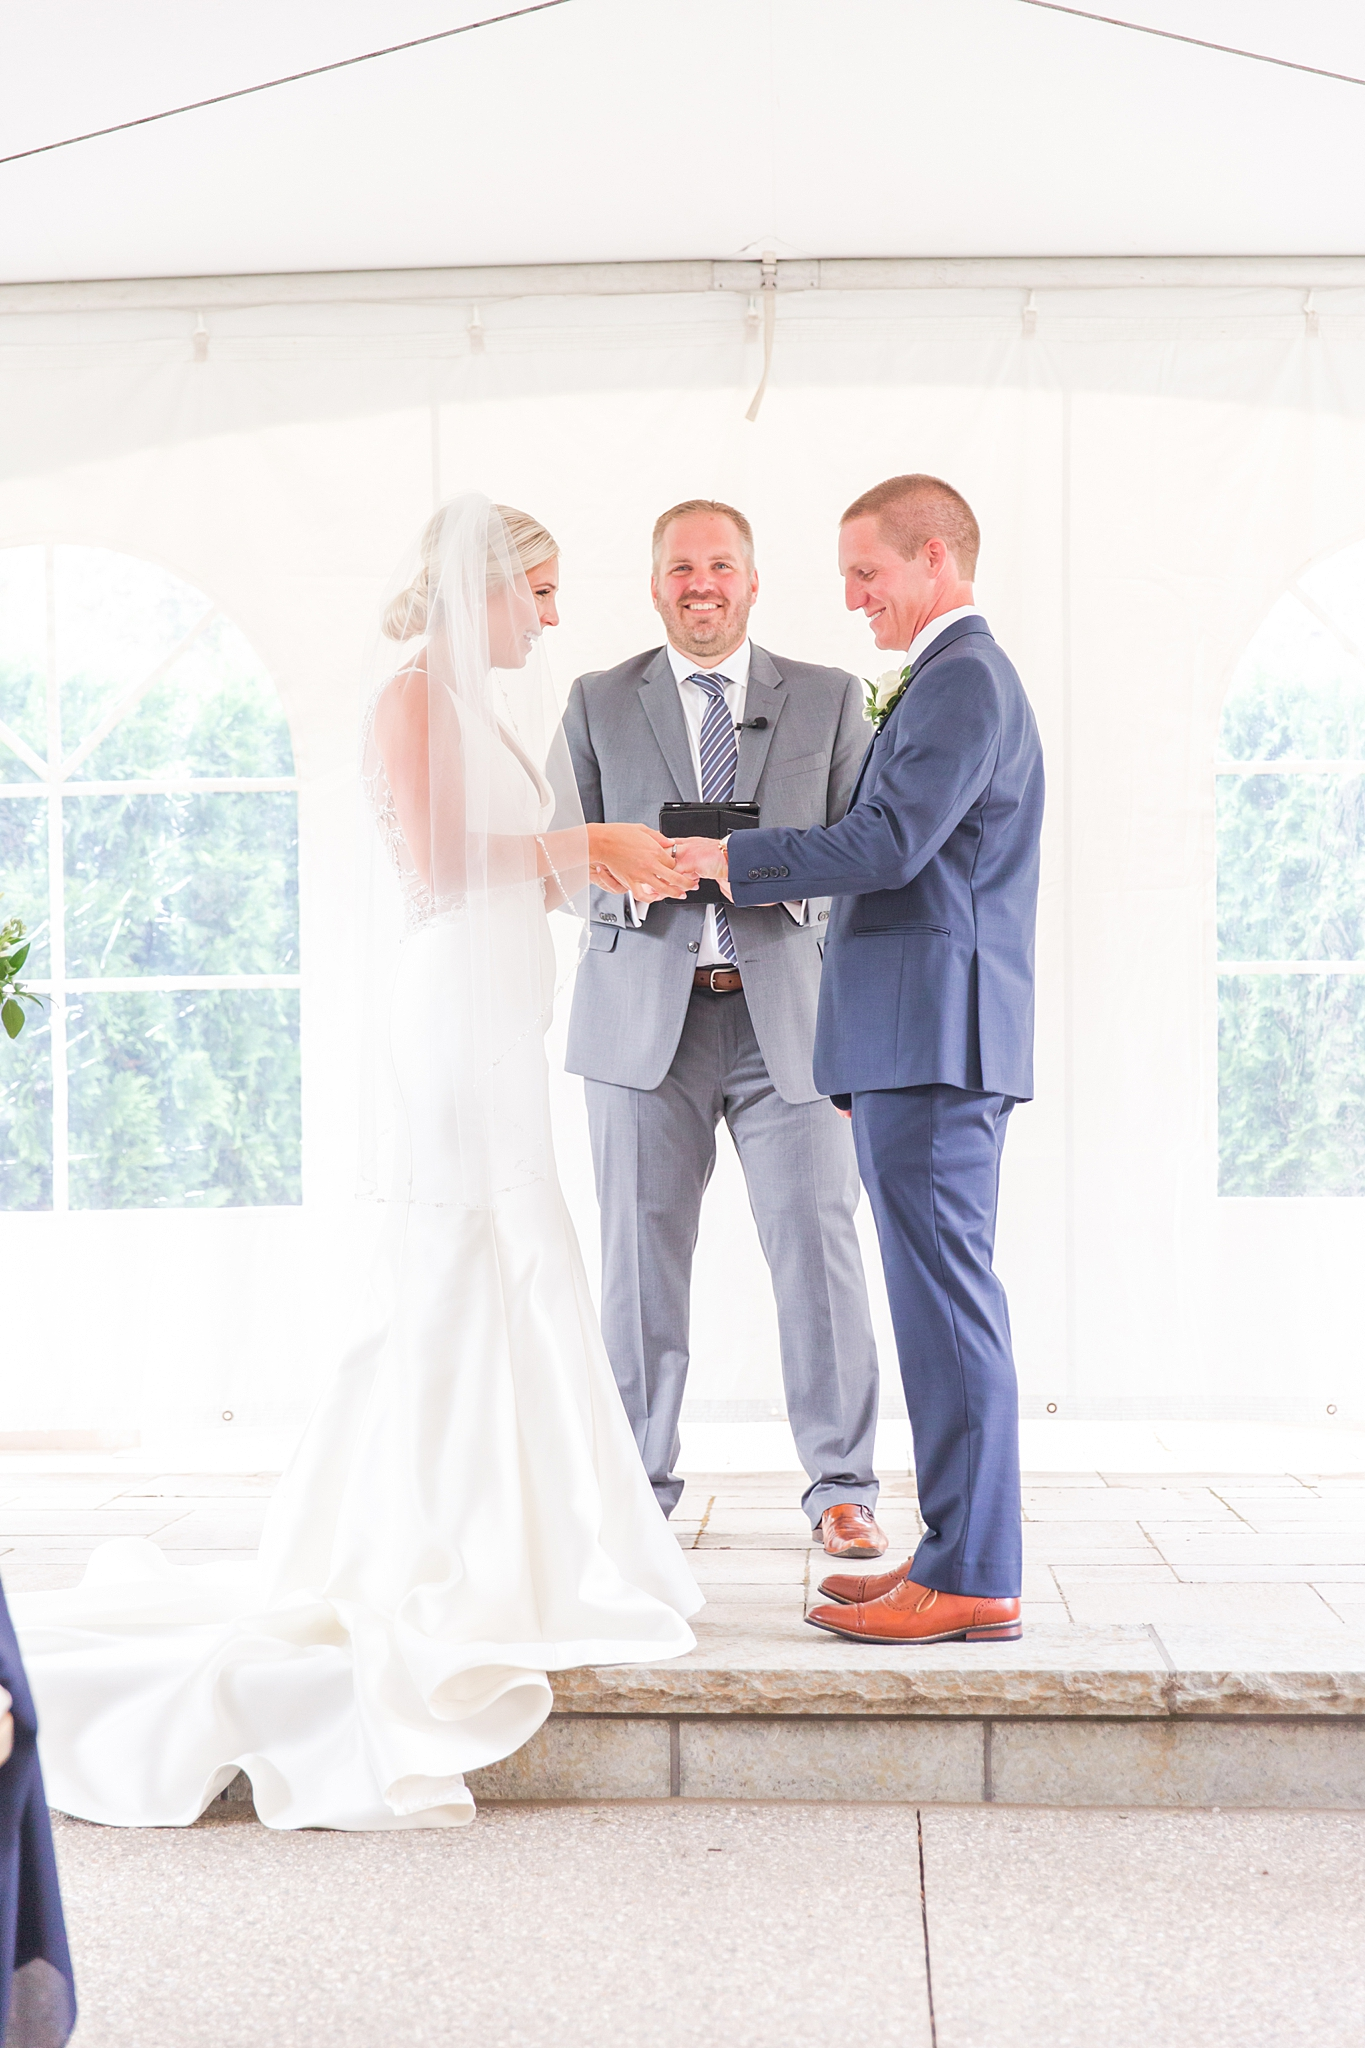 chapman-house-casually-chic-wedding-photography-in-rochester-michigan-by-courtney-carolyn-photography_0035.jpg